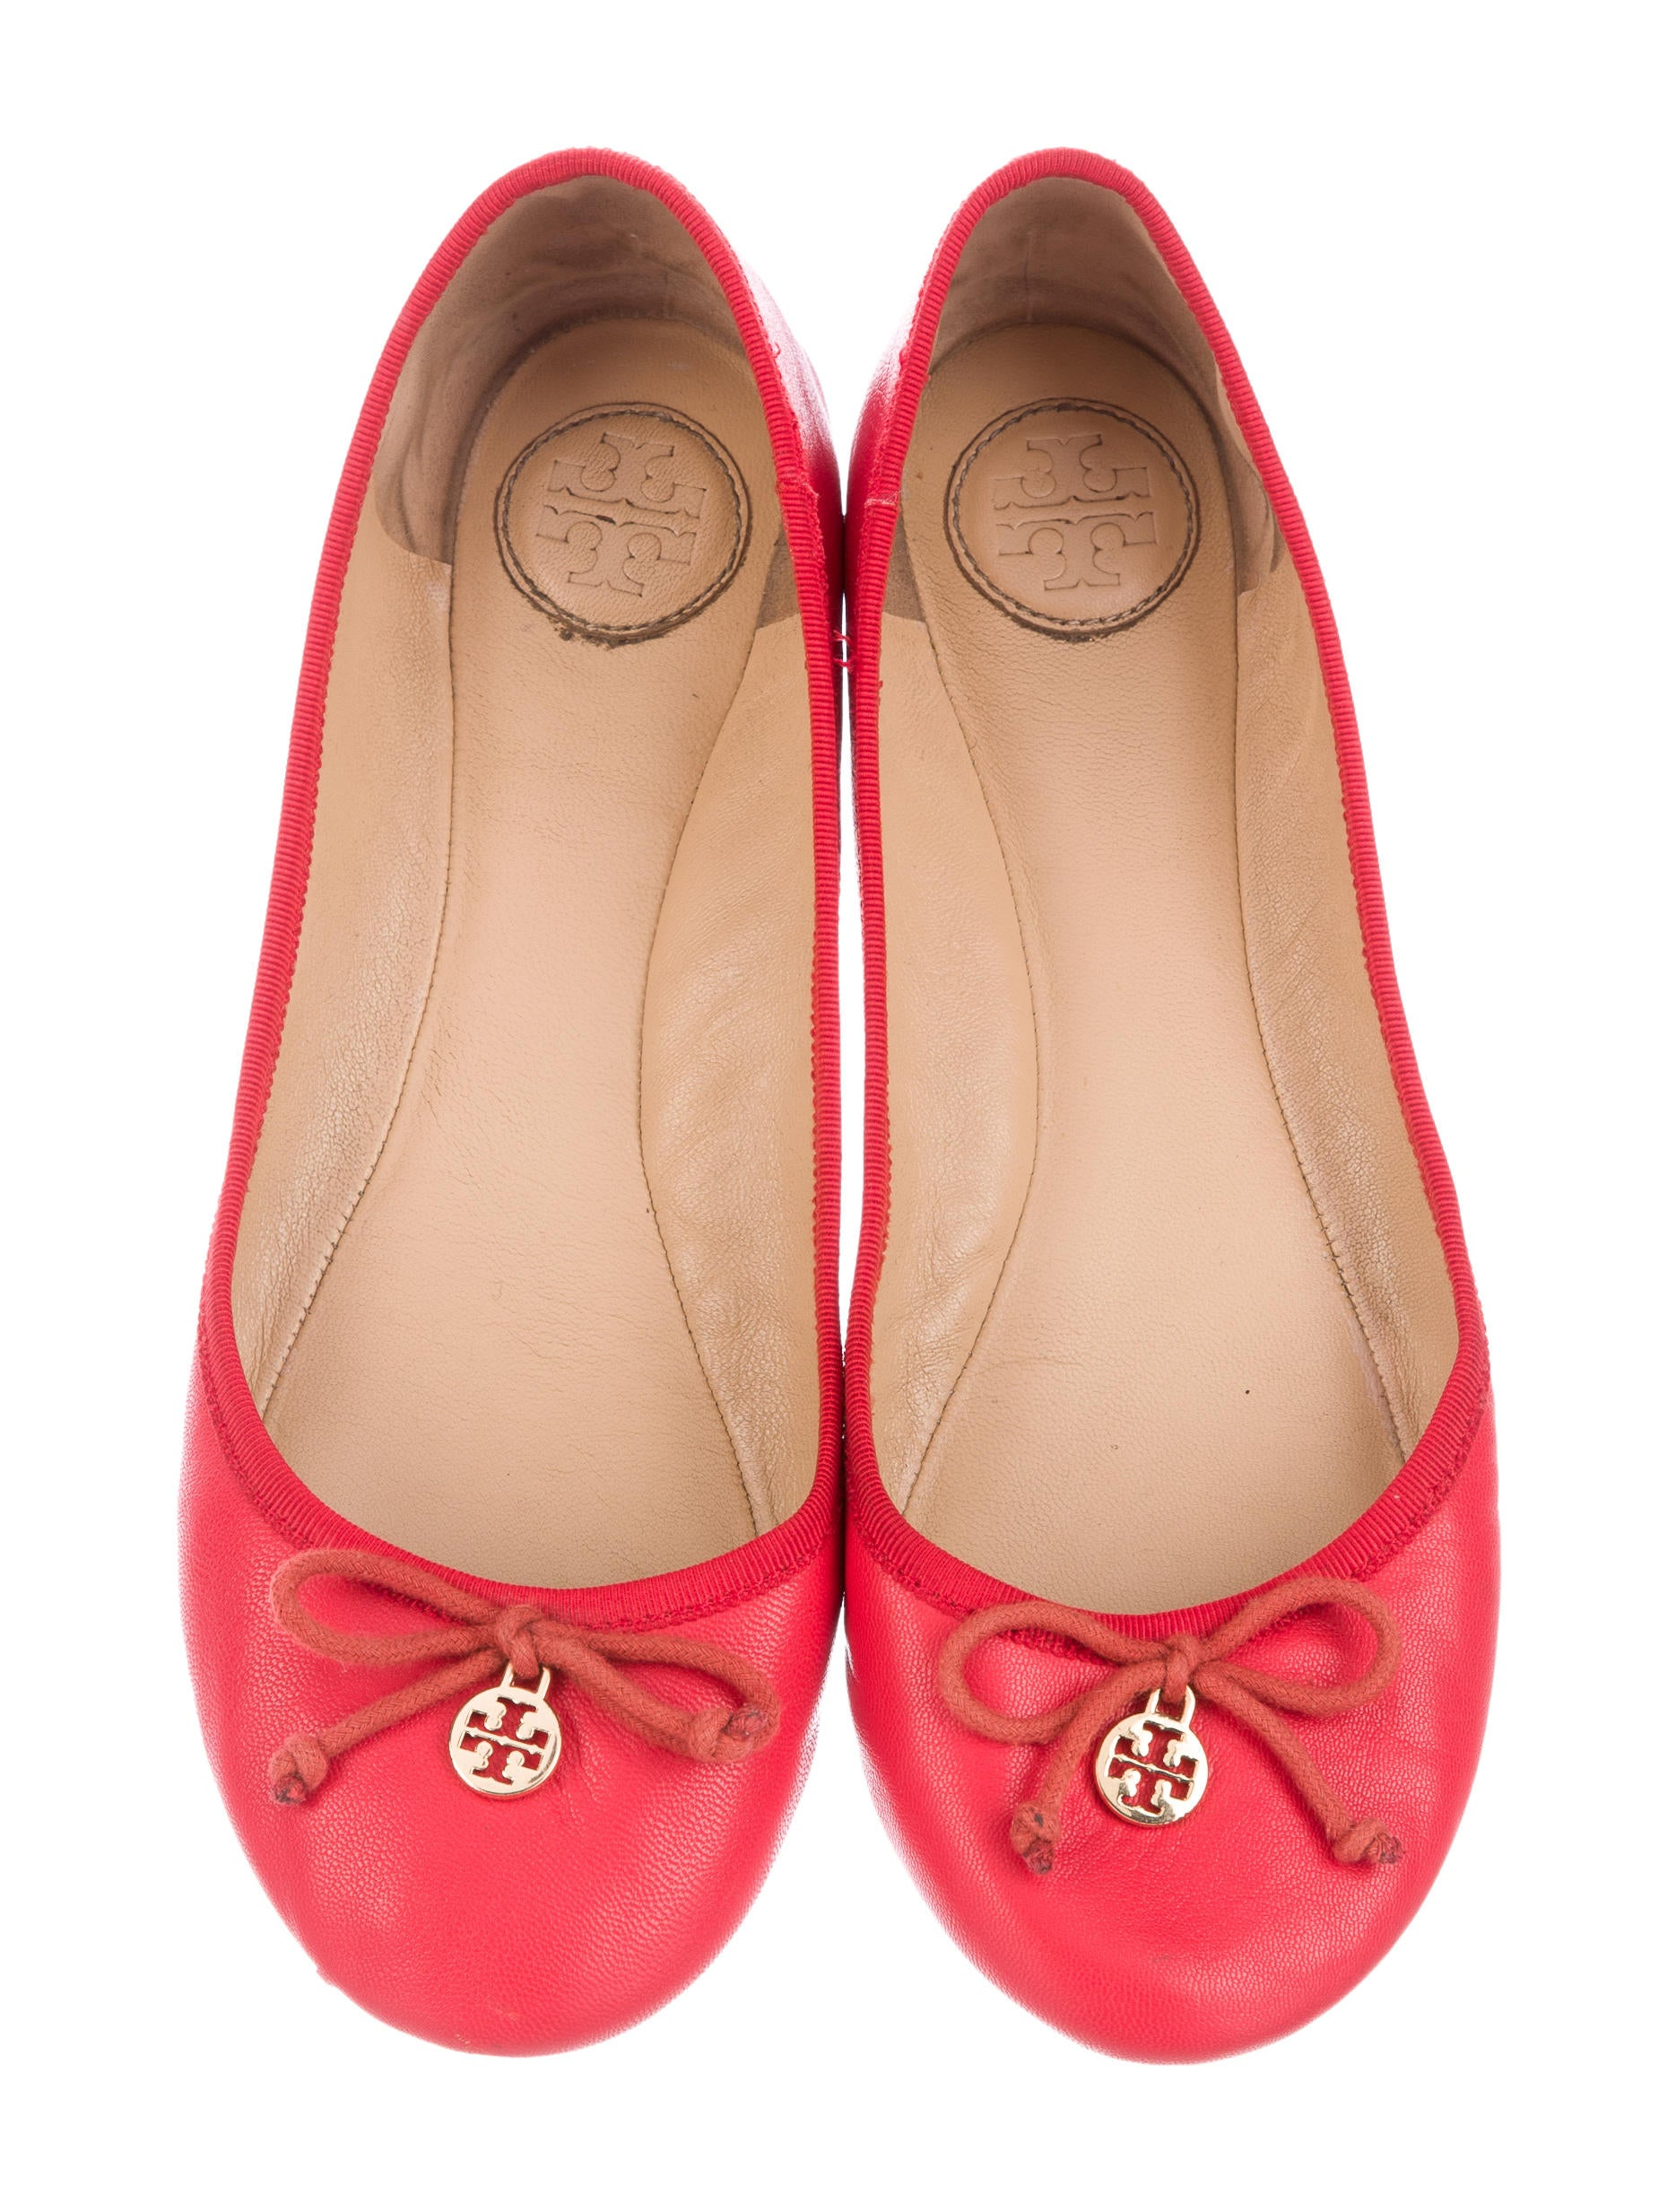 burch leather ballet flats shoes wto95606 the